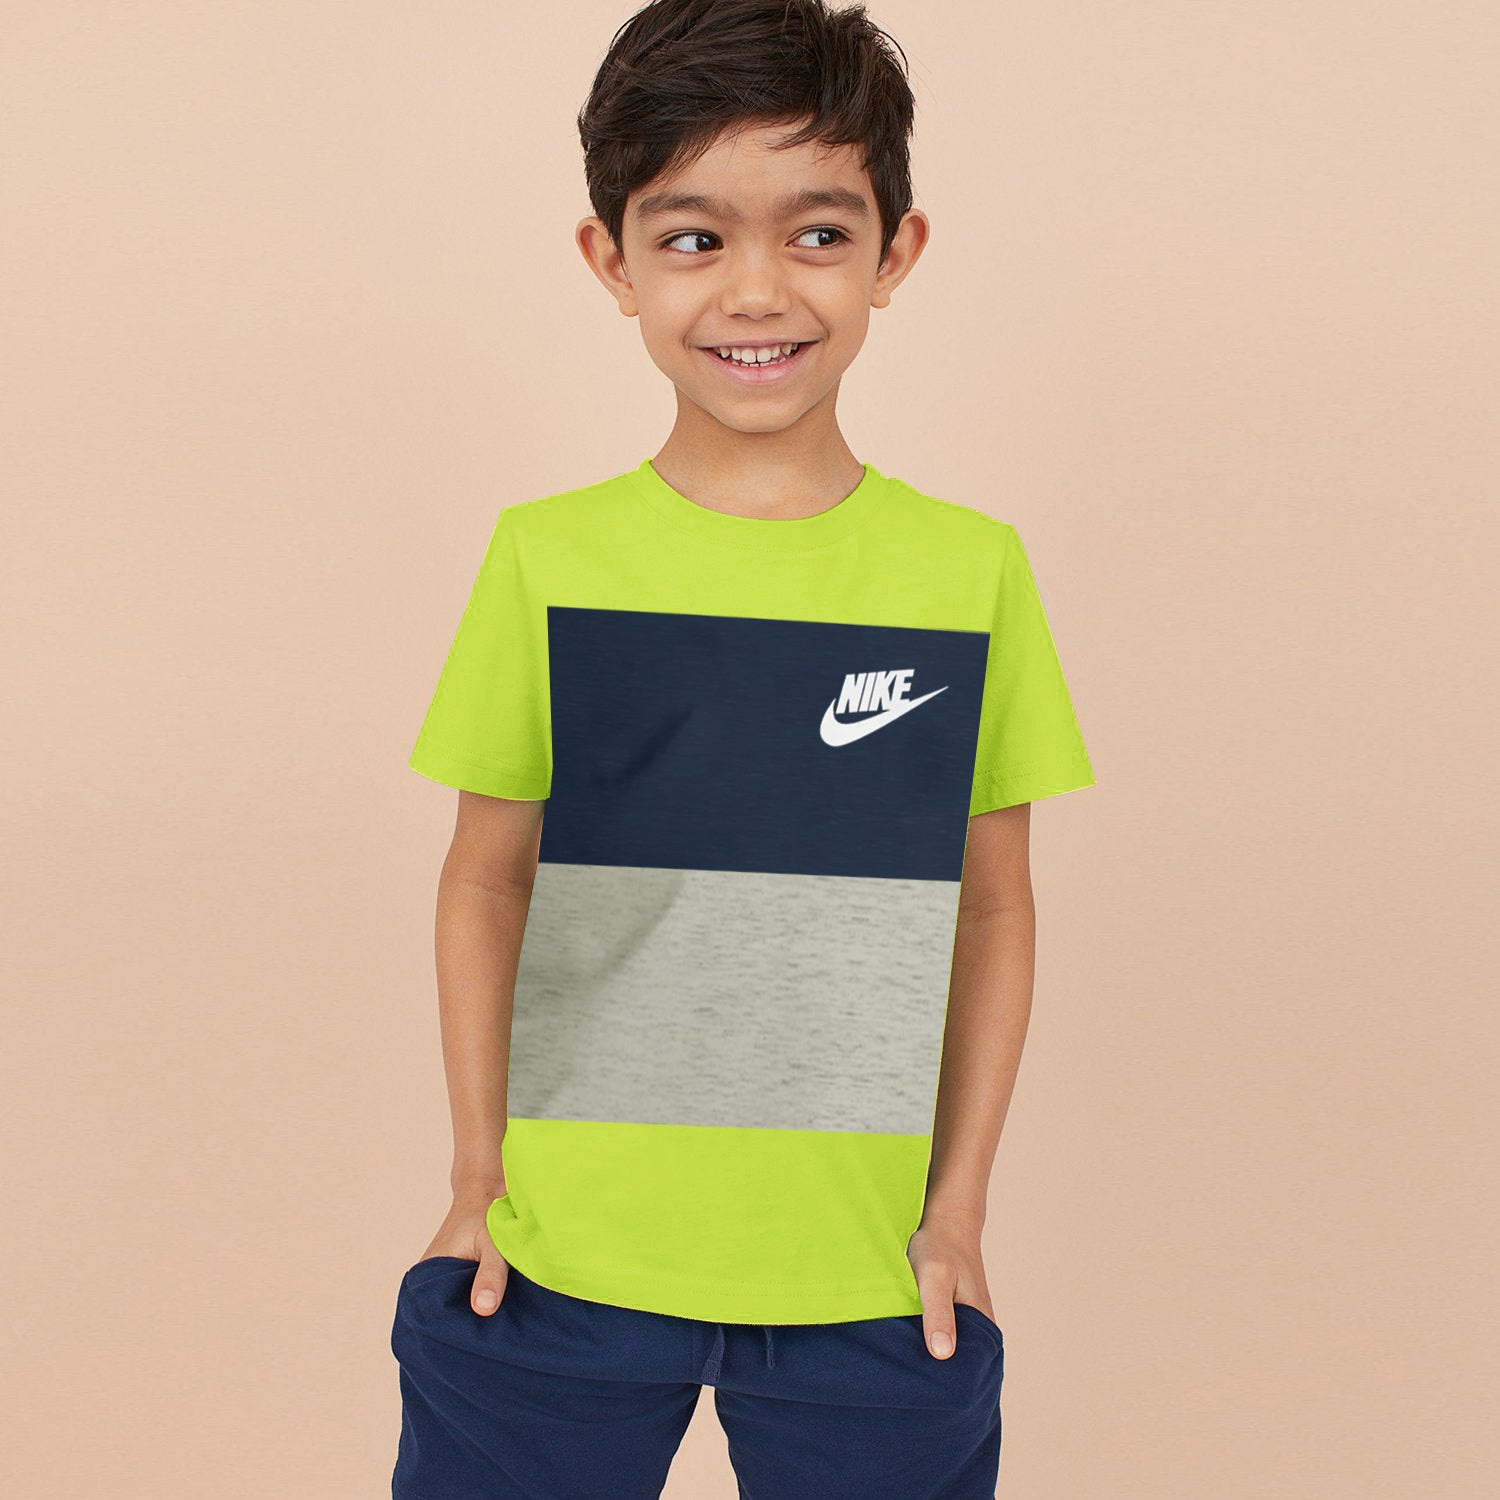 NK Crew Neck Single Jersey Short Sleeve Tee Shirt For Boys-Lime Green with Dark Navy & Grey Melange Panels-SP1962